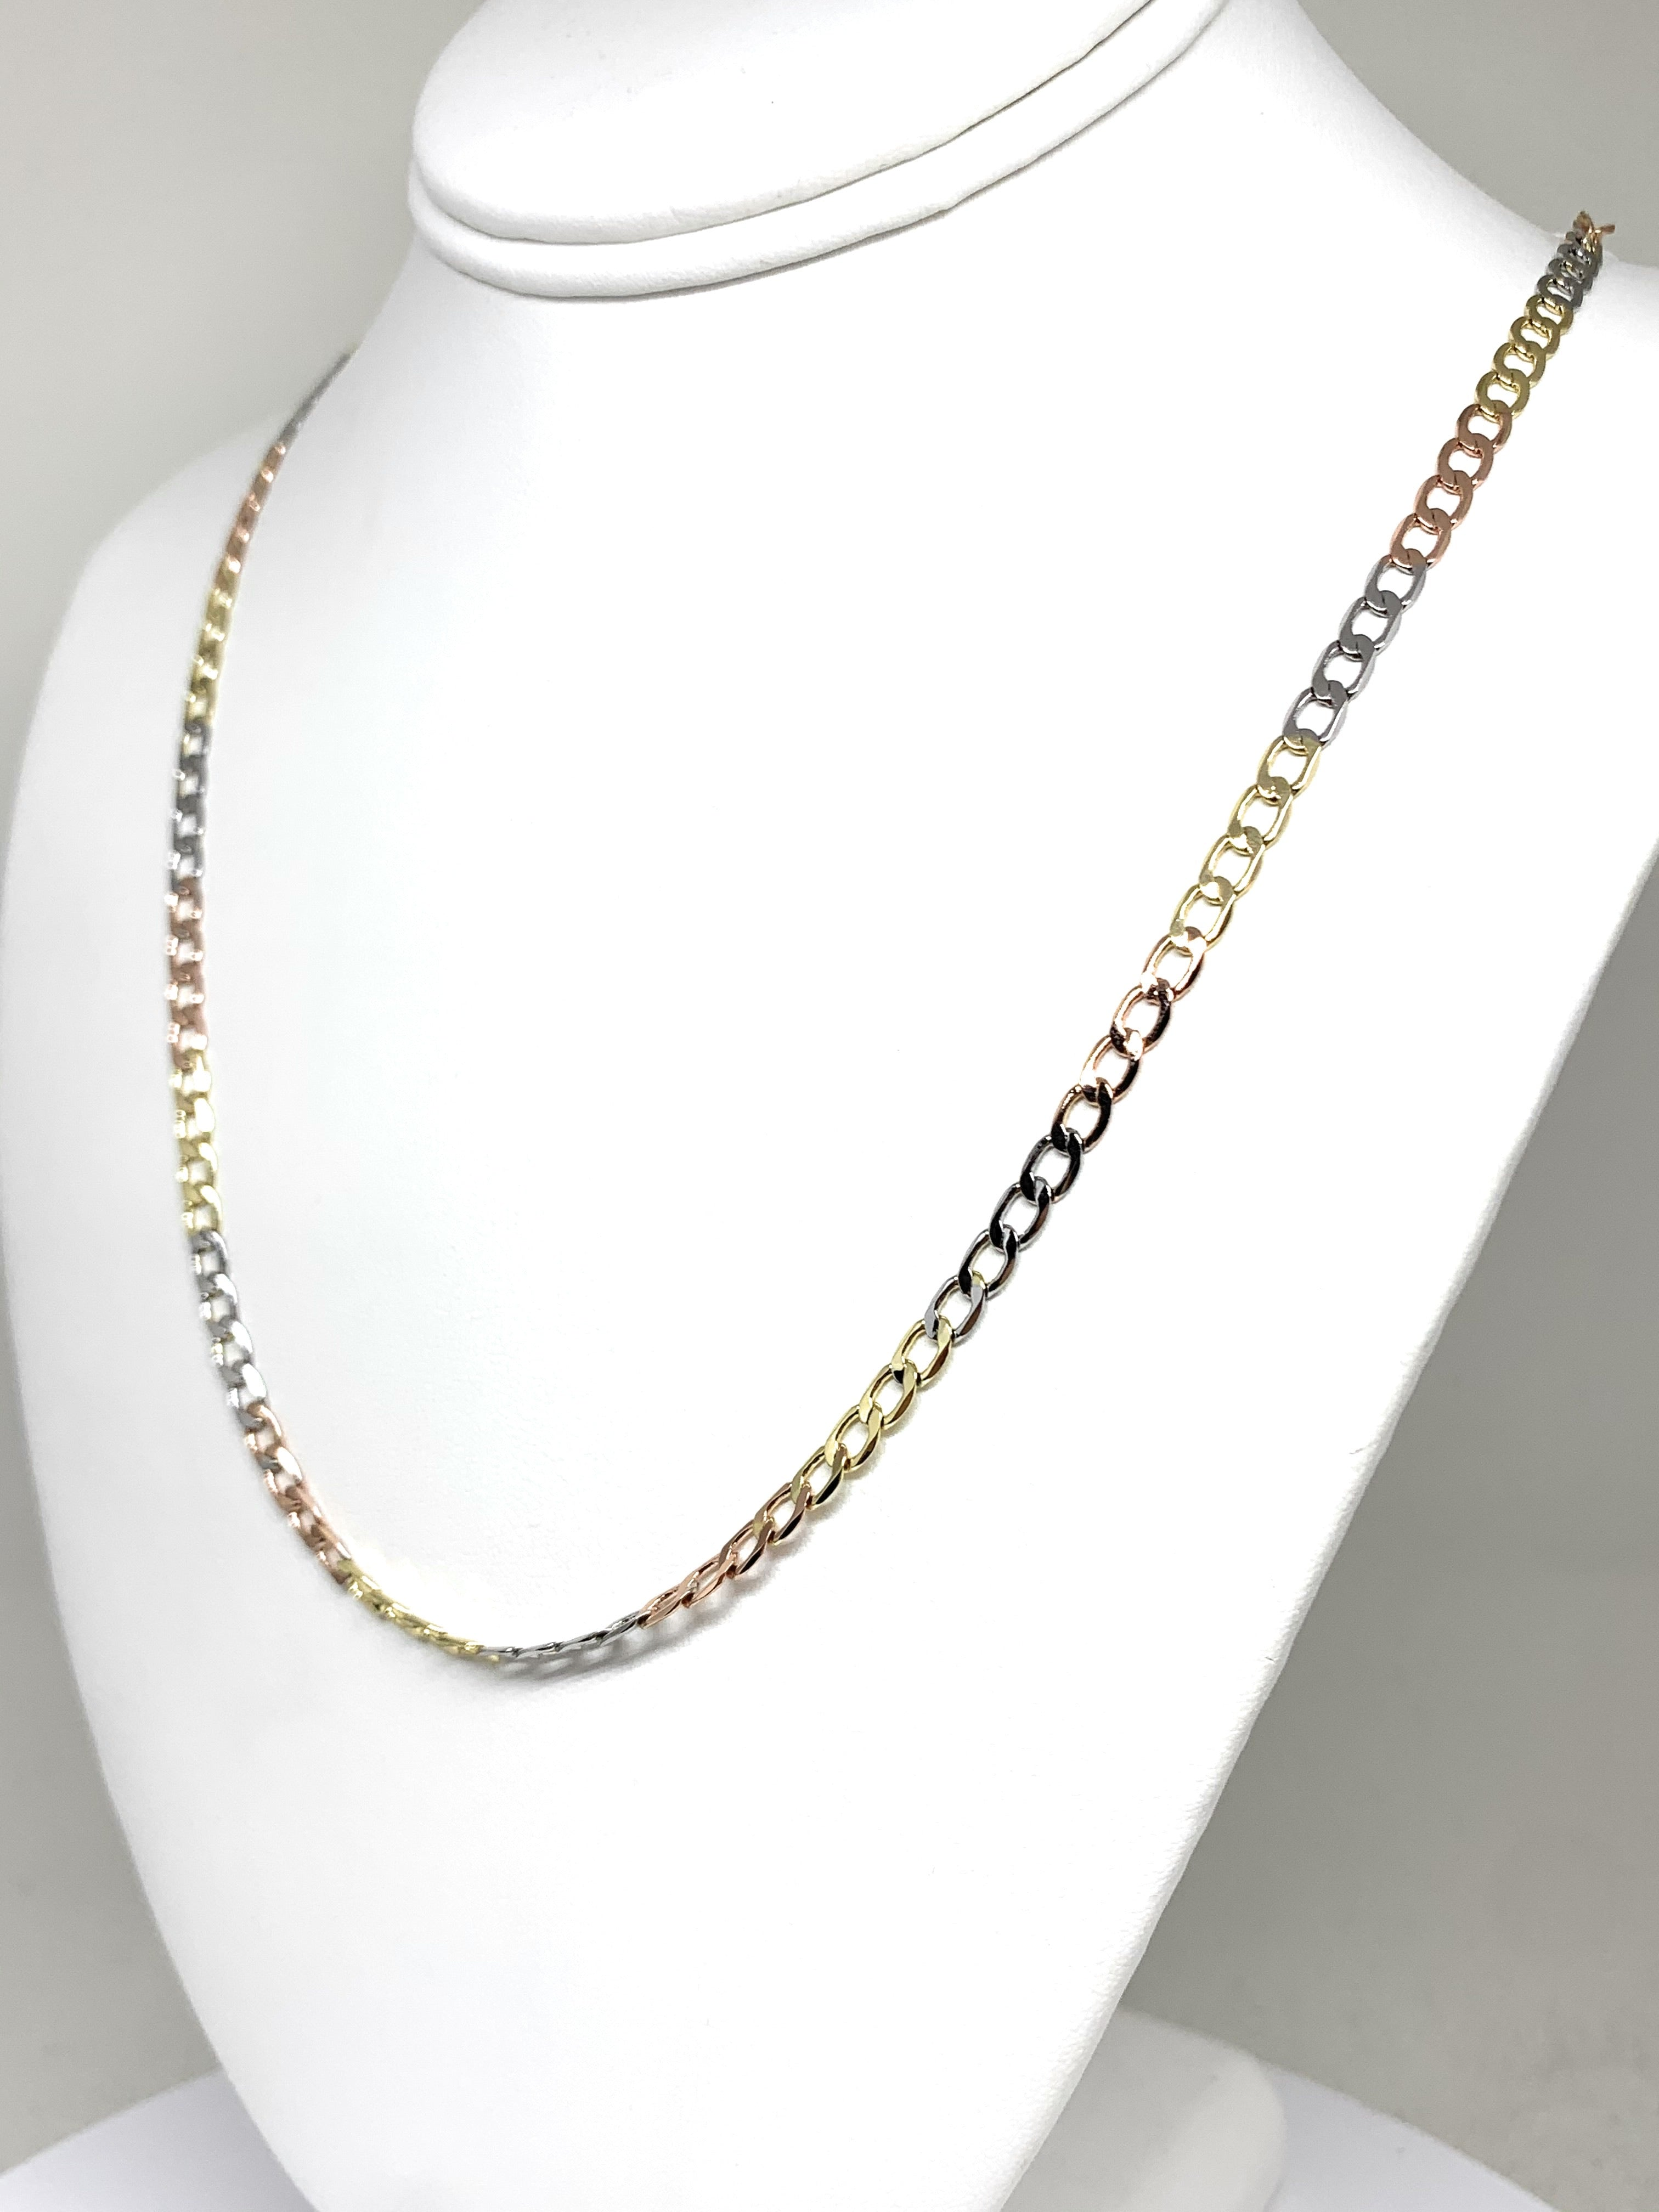 Gold Plated Tri-Color Cuban Link Chain 24 inch 4mm Wdith